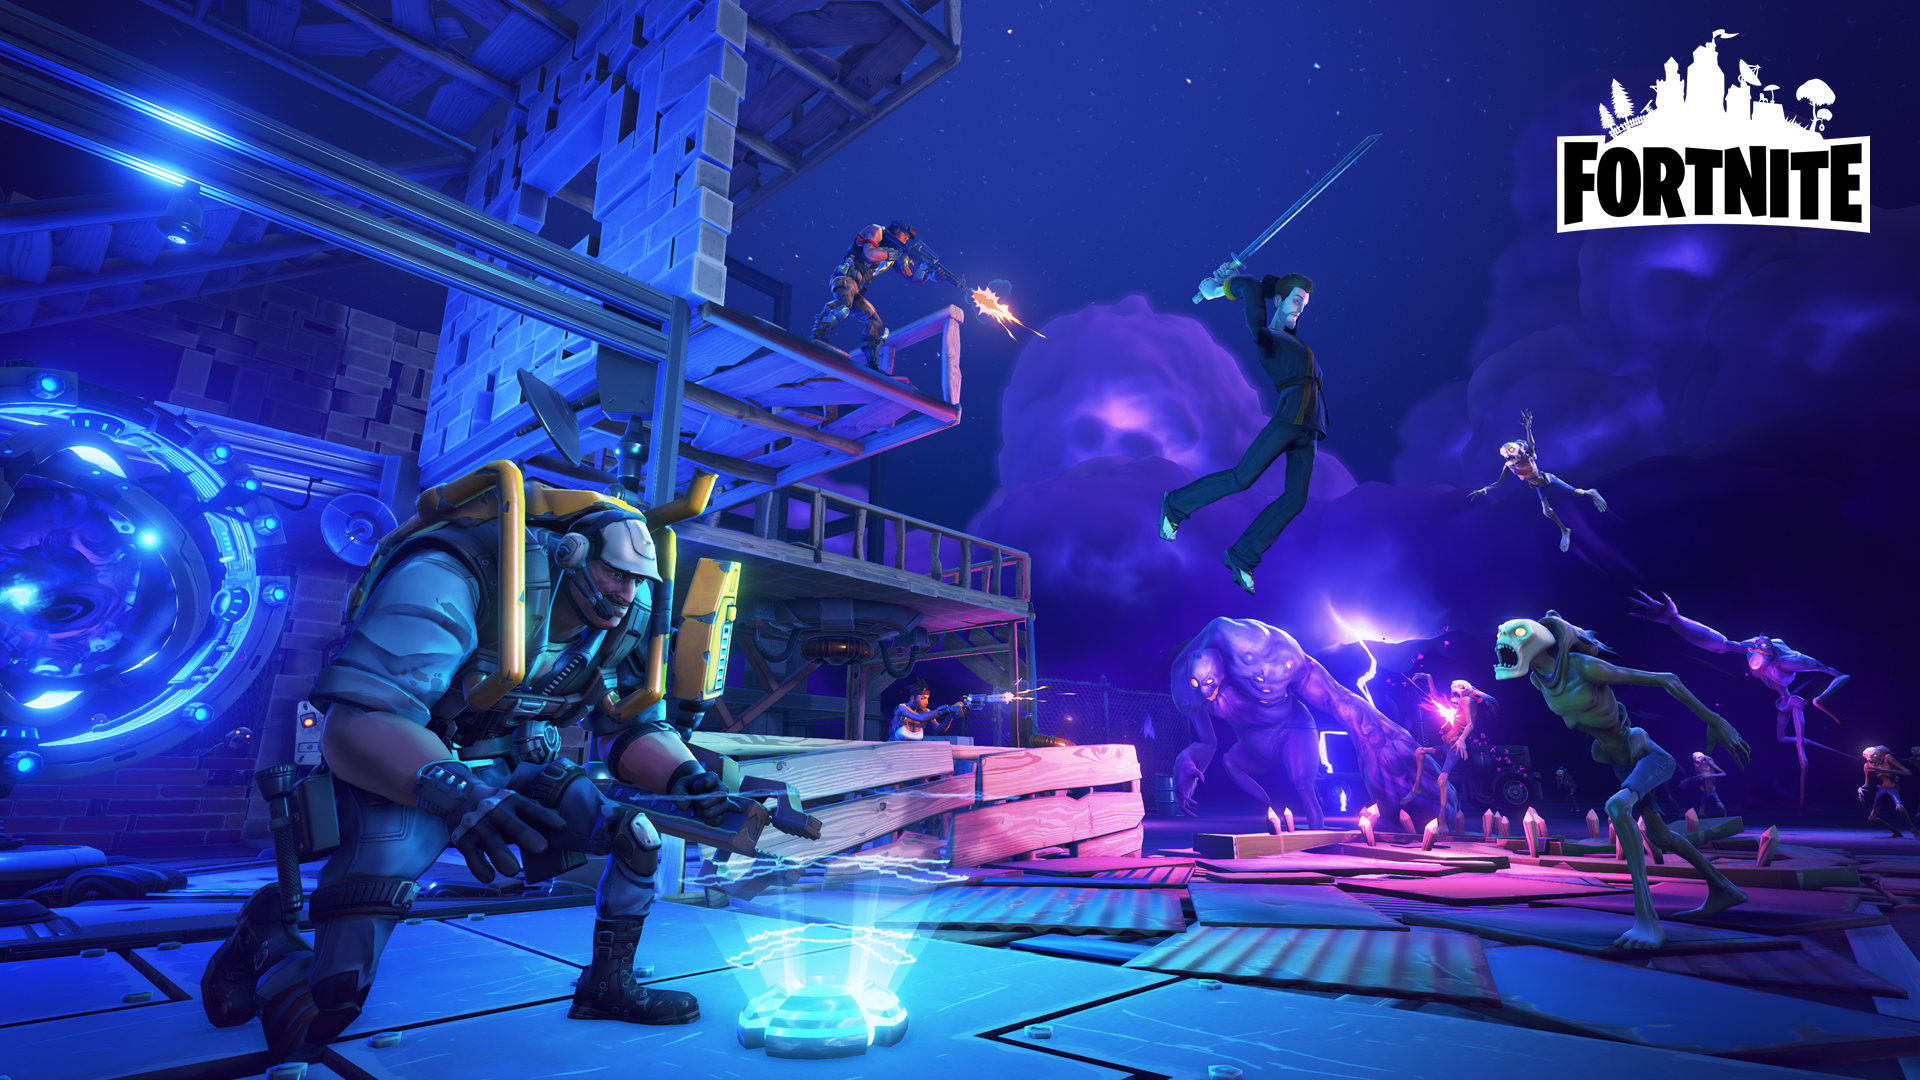 Fortnite Gaming Poster Print Wall Art A4 A3 A2 A1 A0 Xbox One Ps4